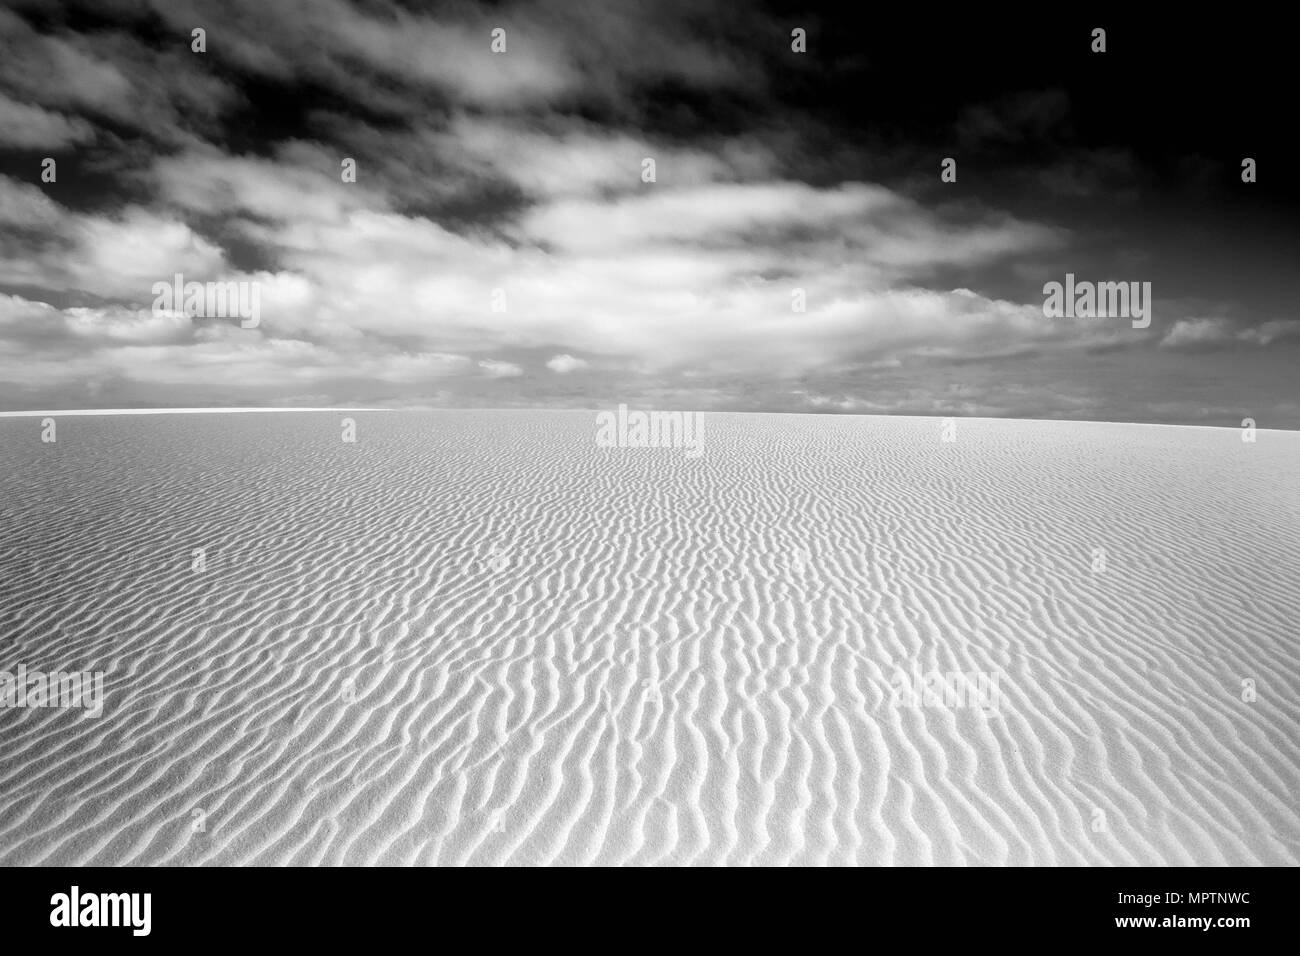 Fine Art Landscape Wallpaper Of Desert Dunes In Black And White